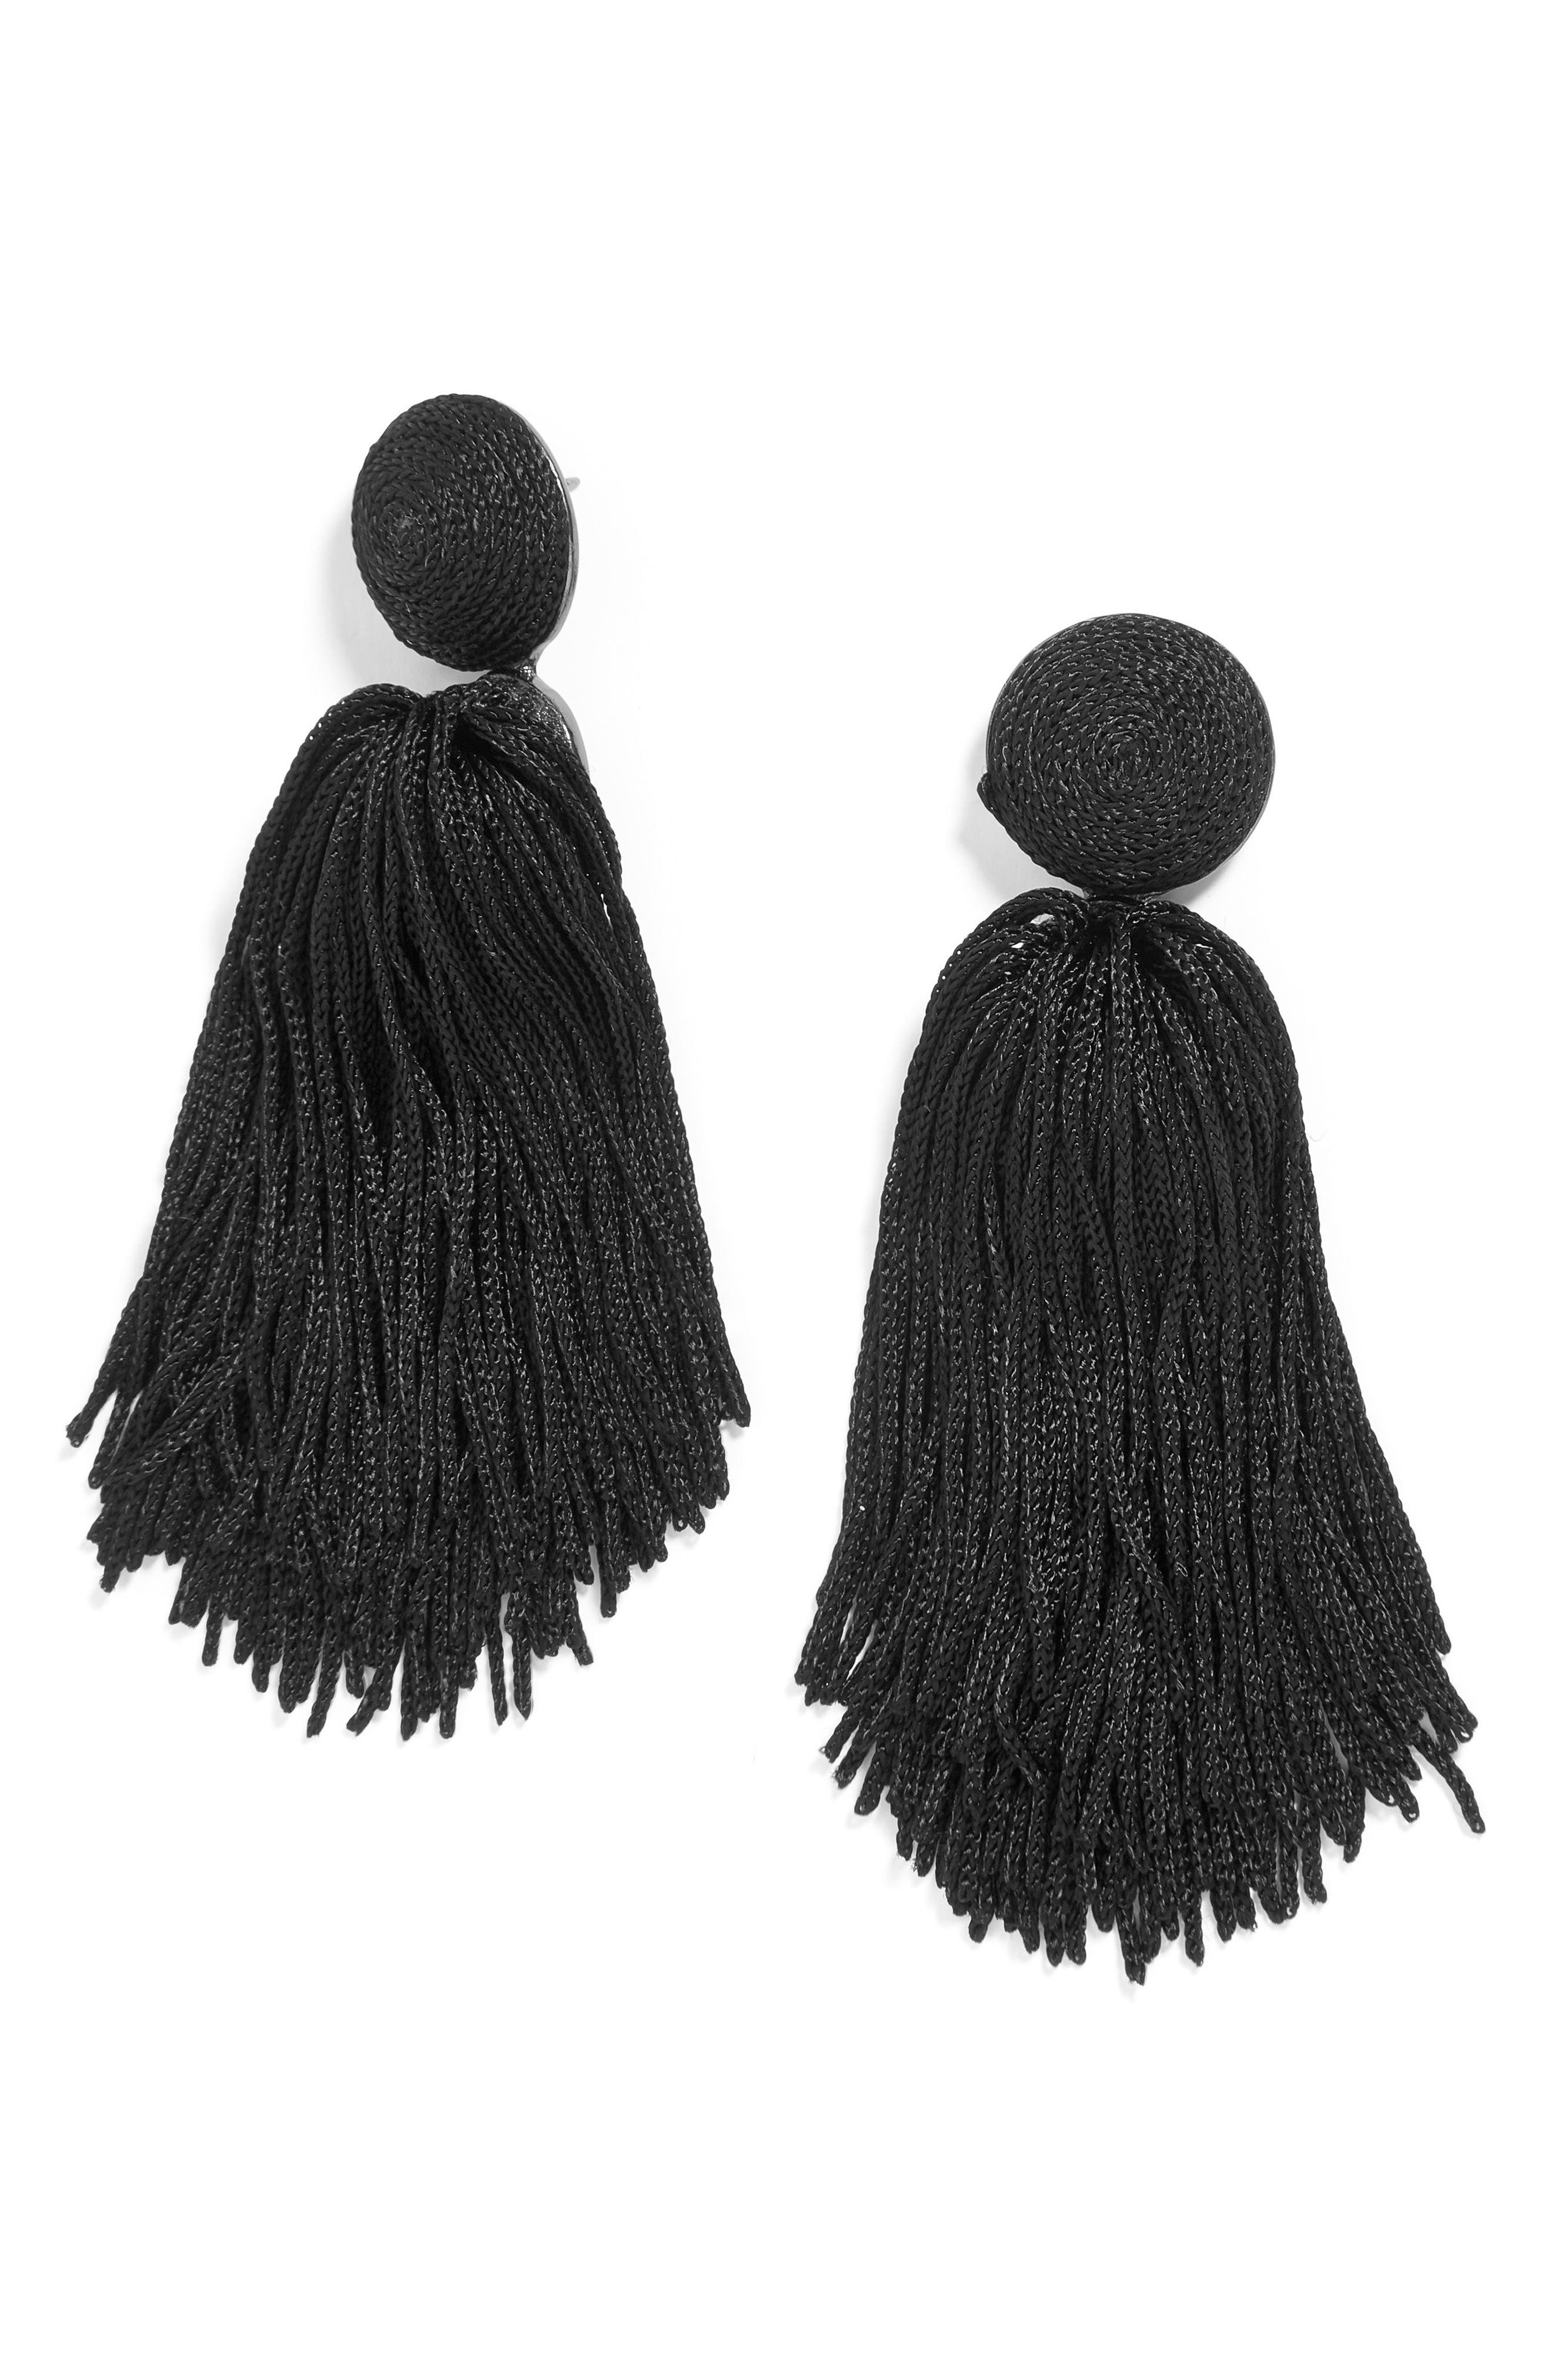 Sonatina Tassel Earrings,                         Main,                         color, Black